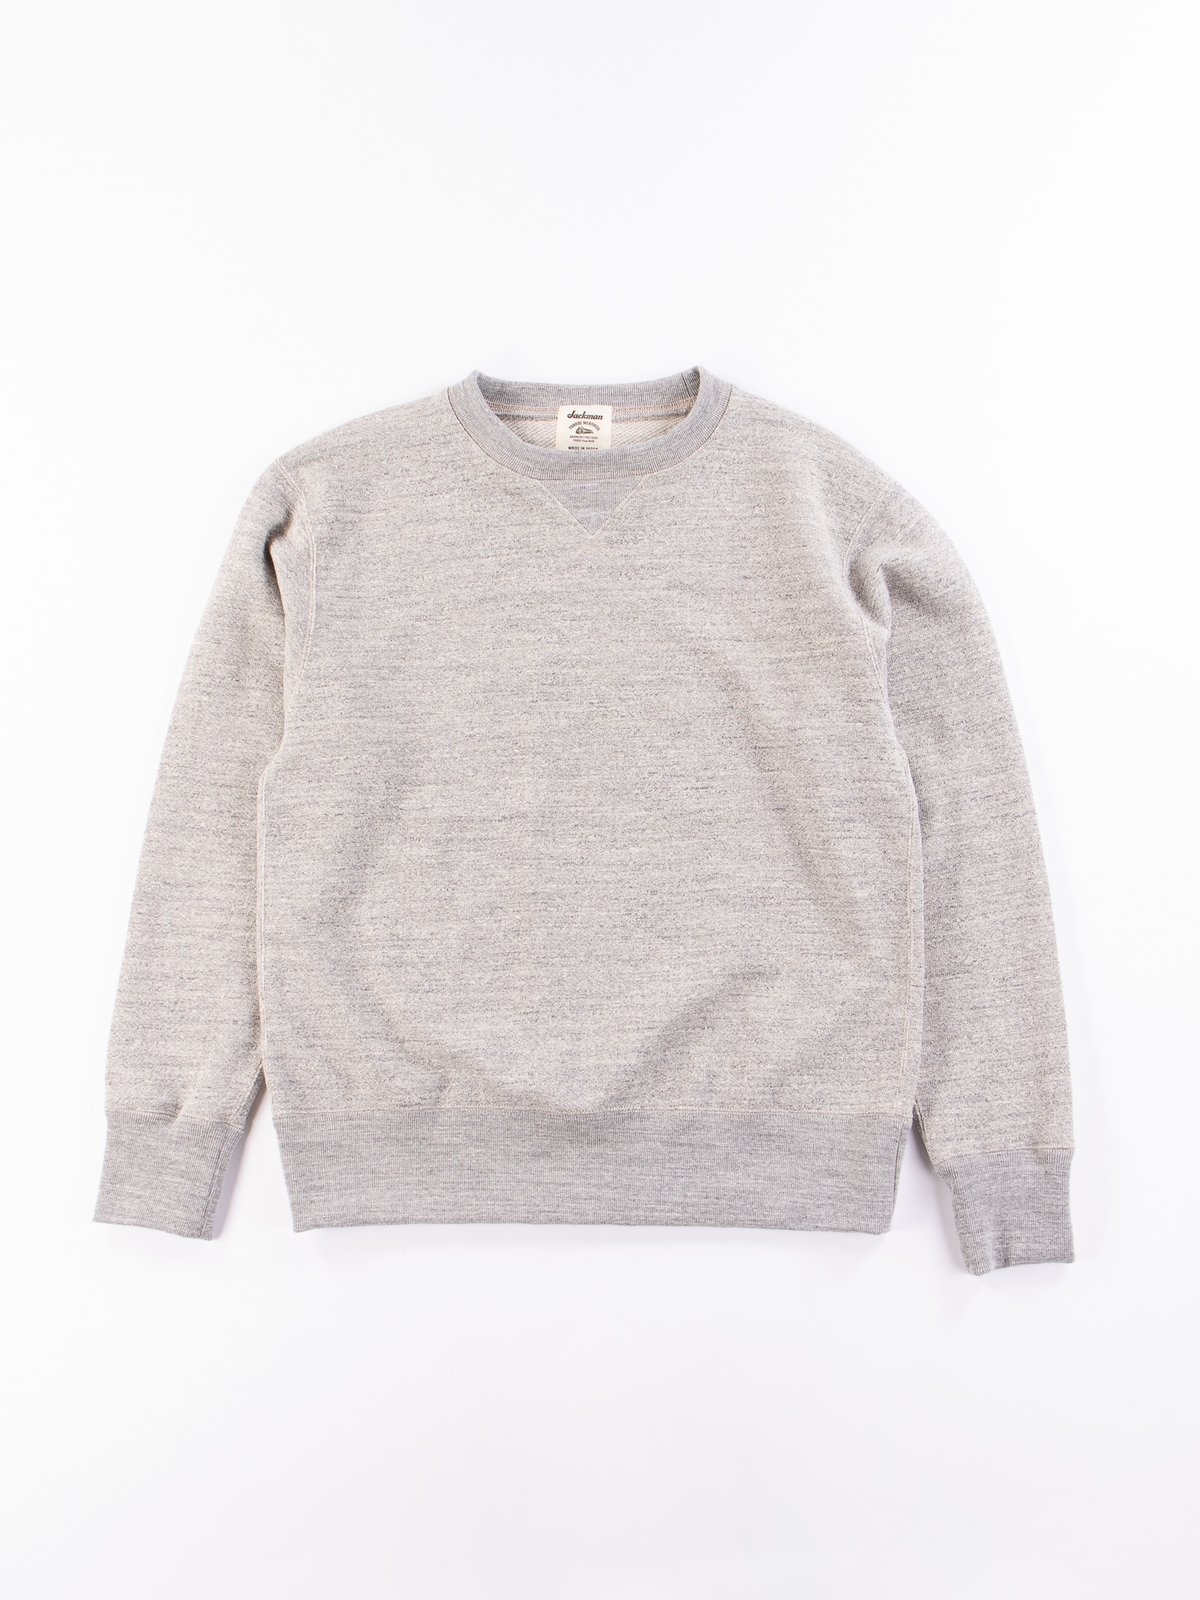 Heather Grey GG Crewneck Sweat - Image 1